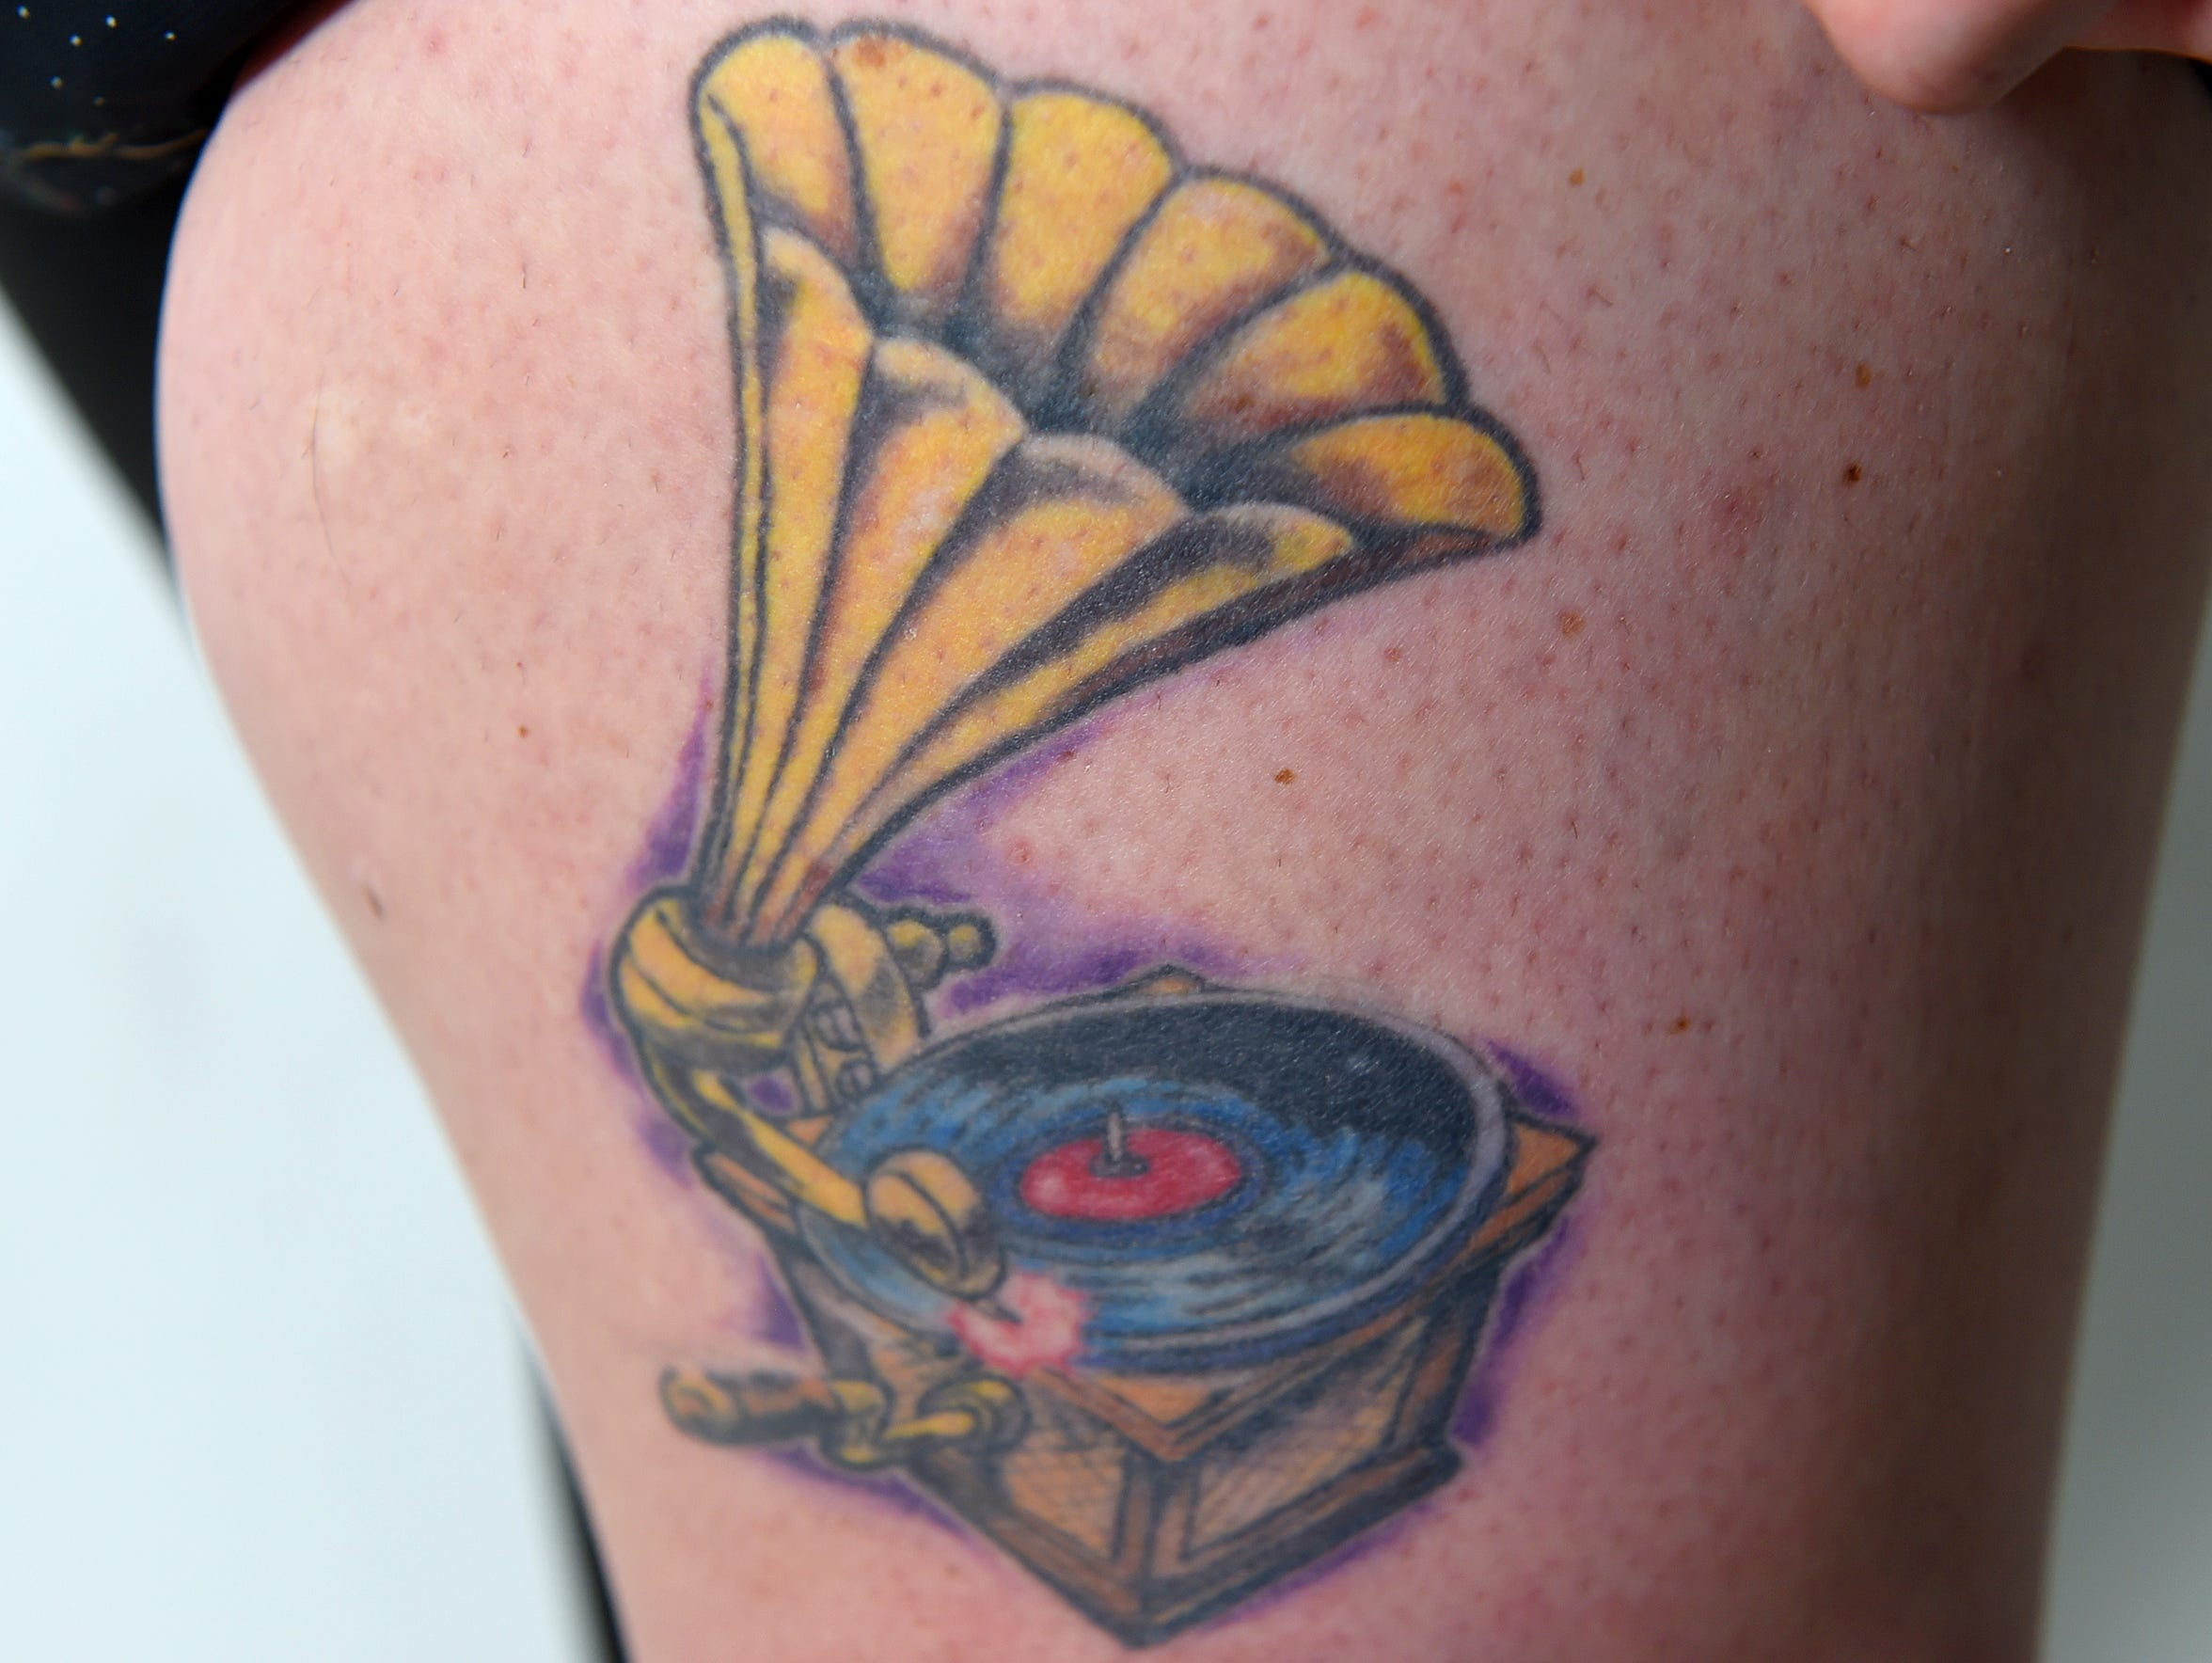 Laura Peters has a tattoo of a phonograph on her upper